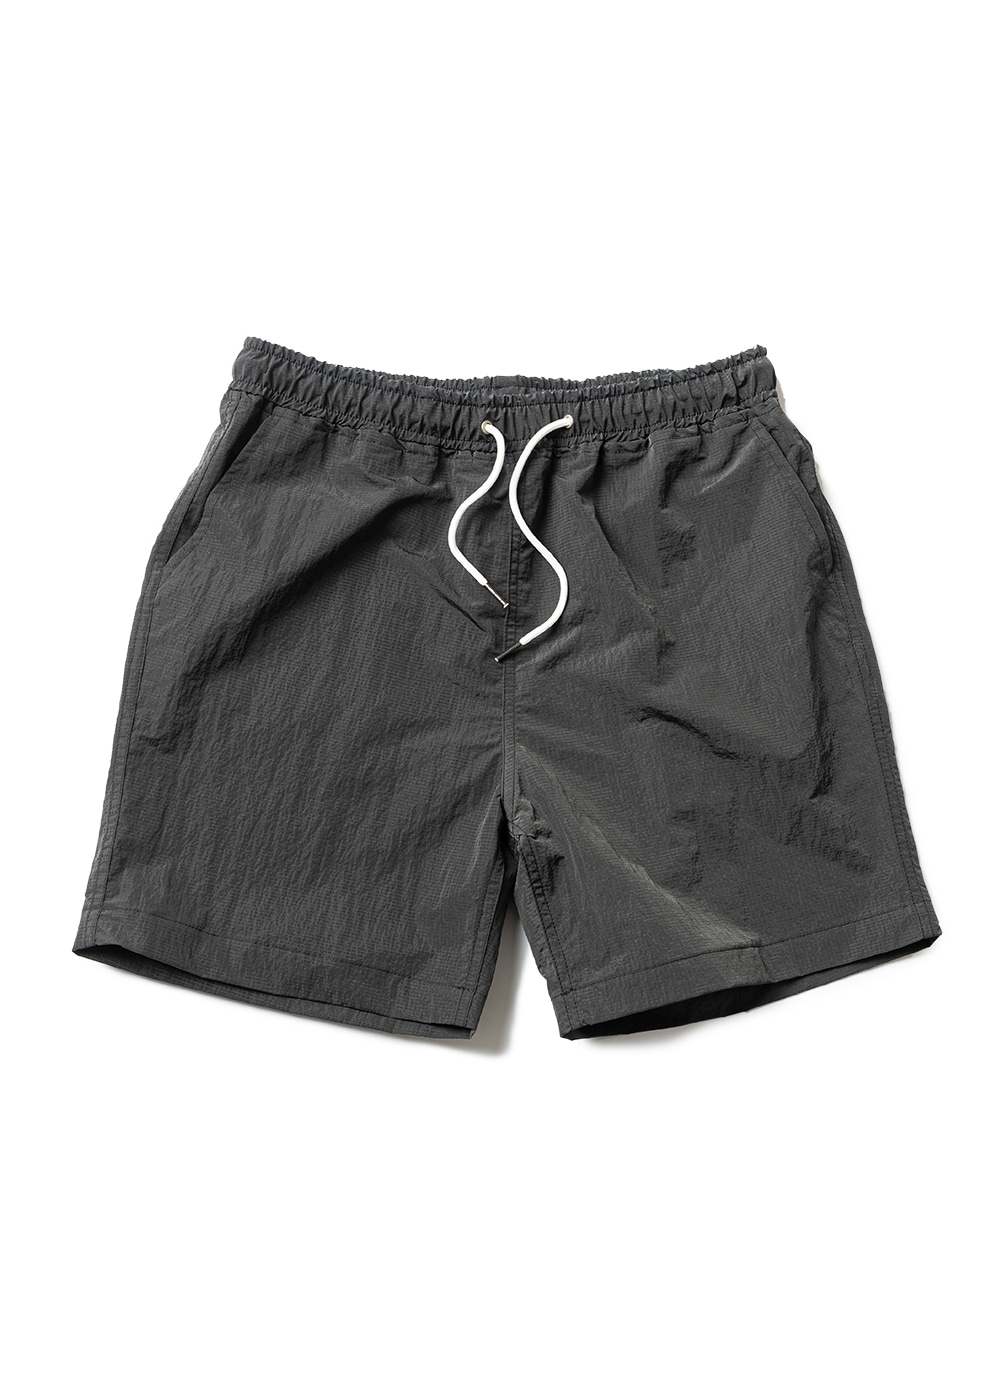 NYLON METAL SHORT PANTS MUZSP004-DG